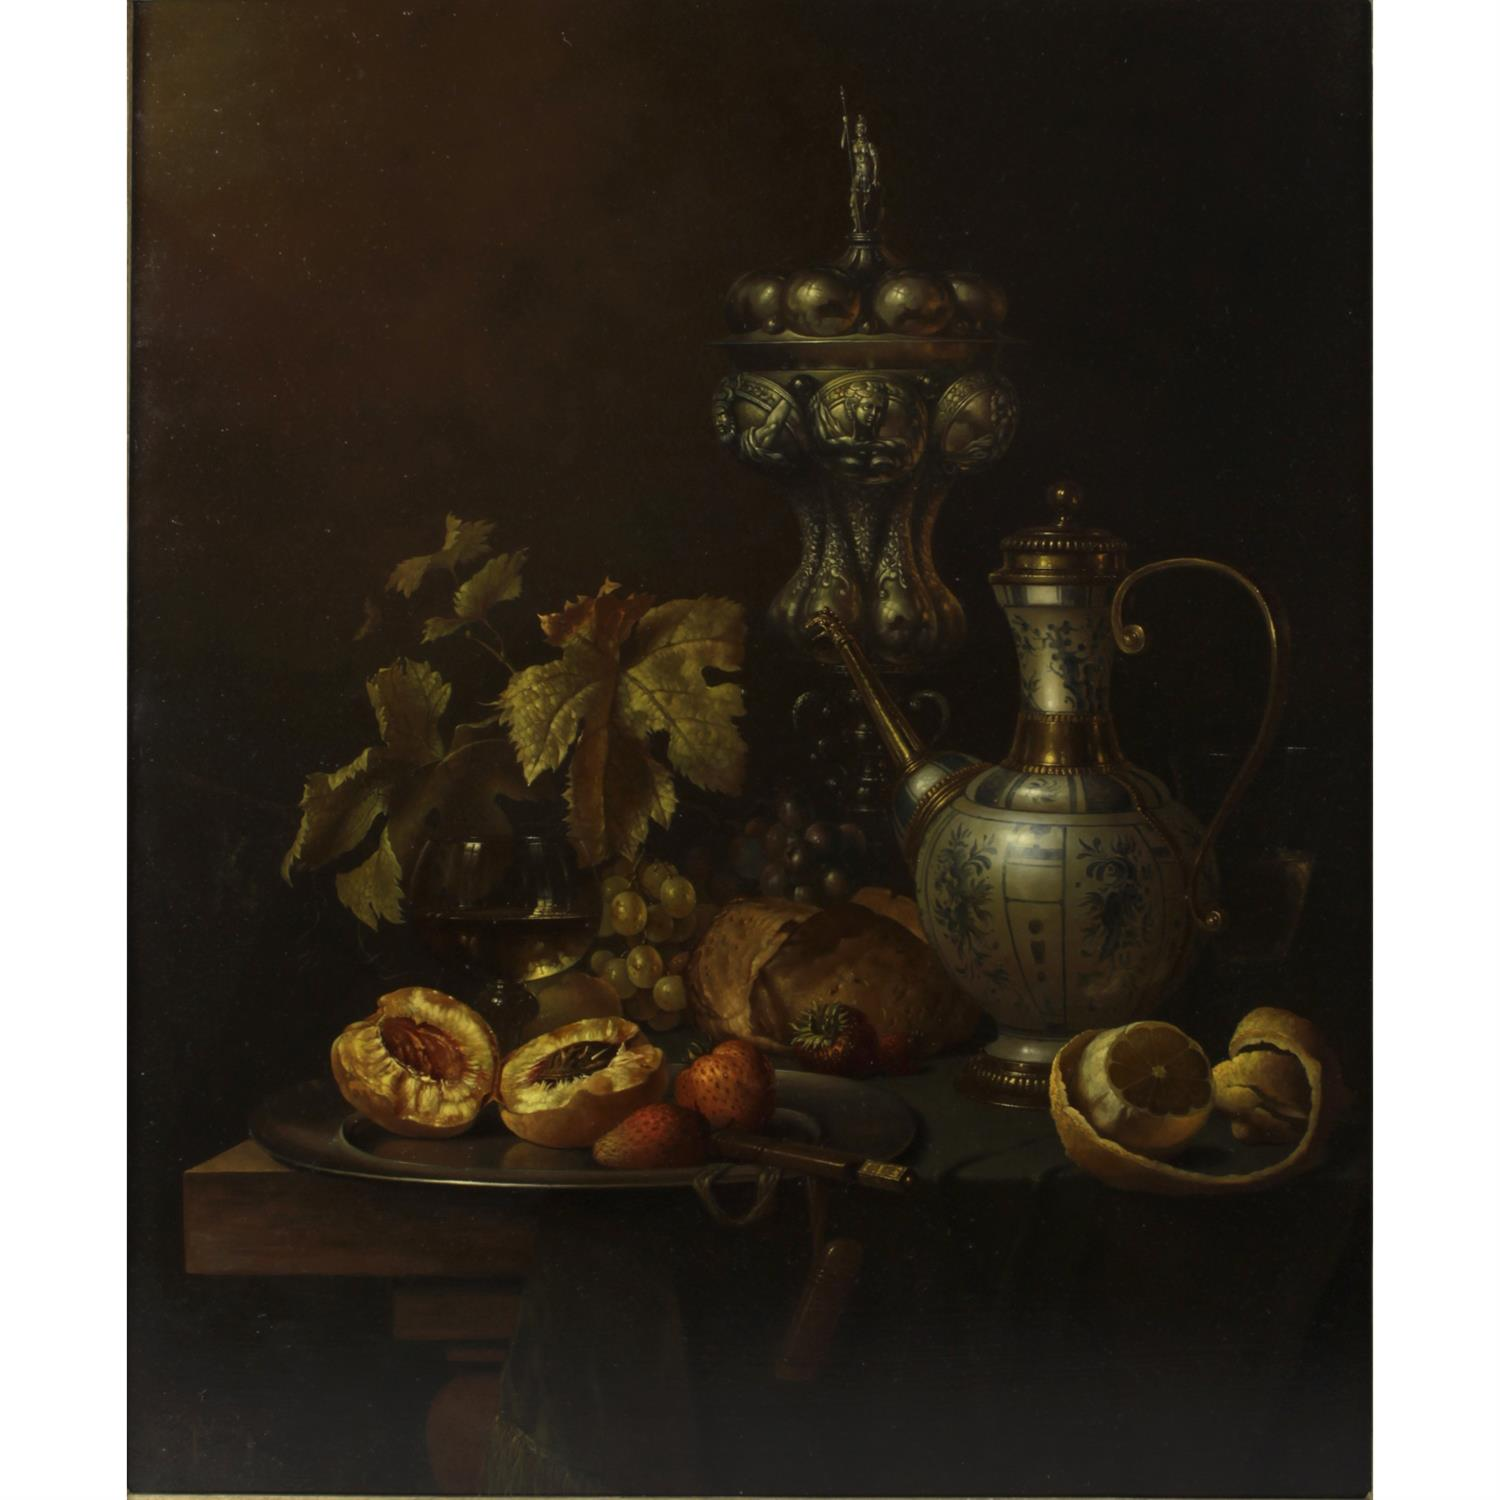 Gyula Bubarnik (b.1936), signed oil on panel still life study of a table of fruit and wine.